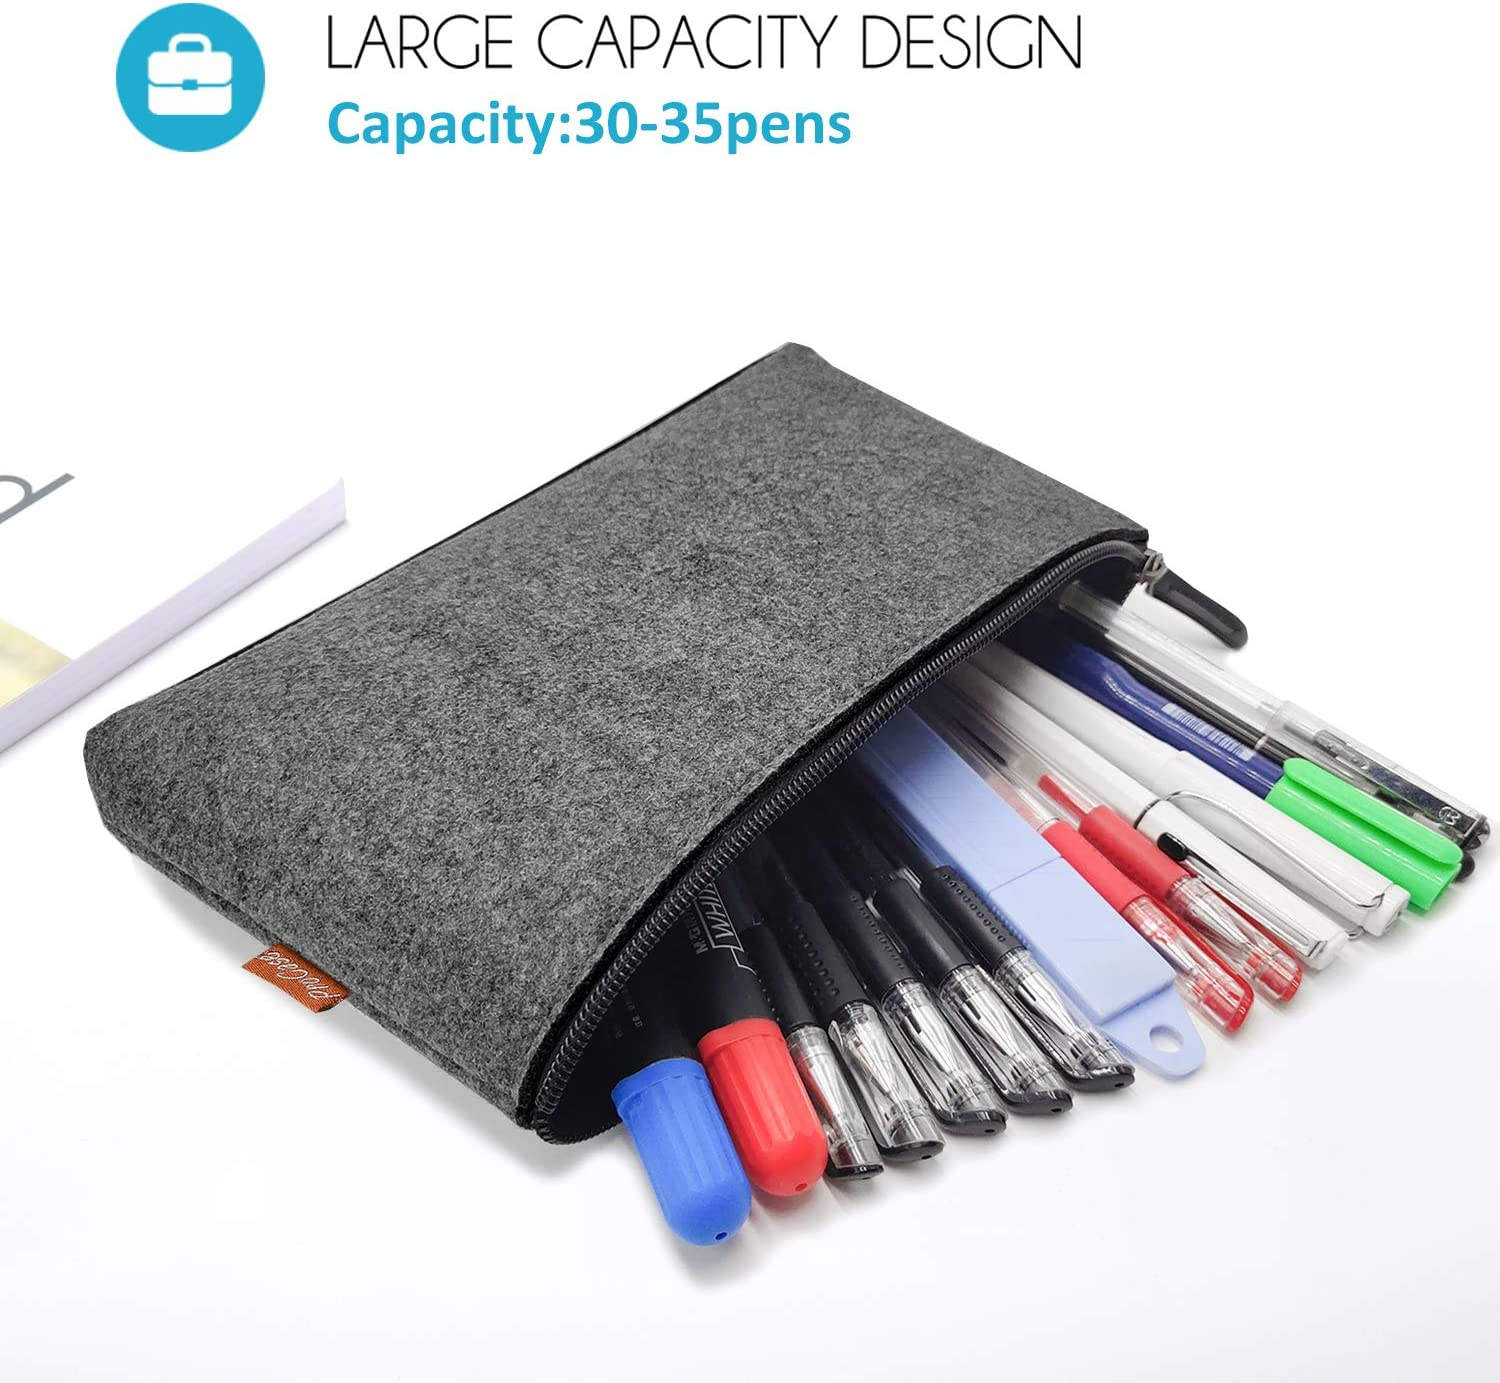 Gel Pen Pencils Grey Markers and other School Supplies -2 Pack Multi-Functional Felt Pouch Zipper Bag for Pens Highlighters ProCase Pencil Bag Pen Case